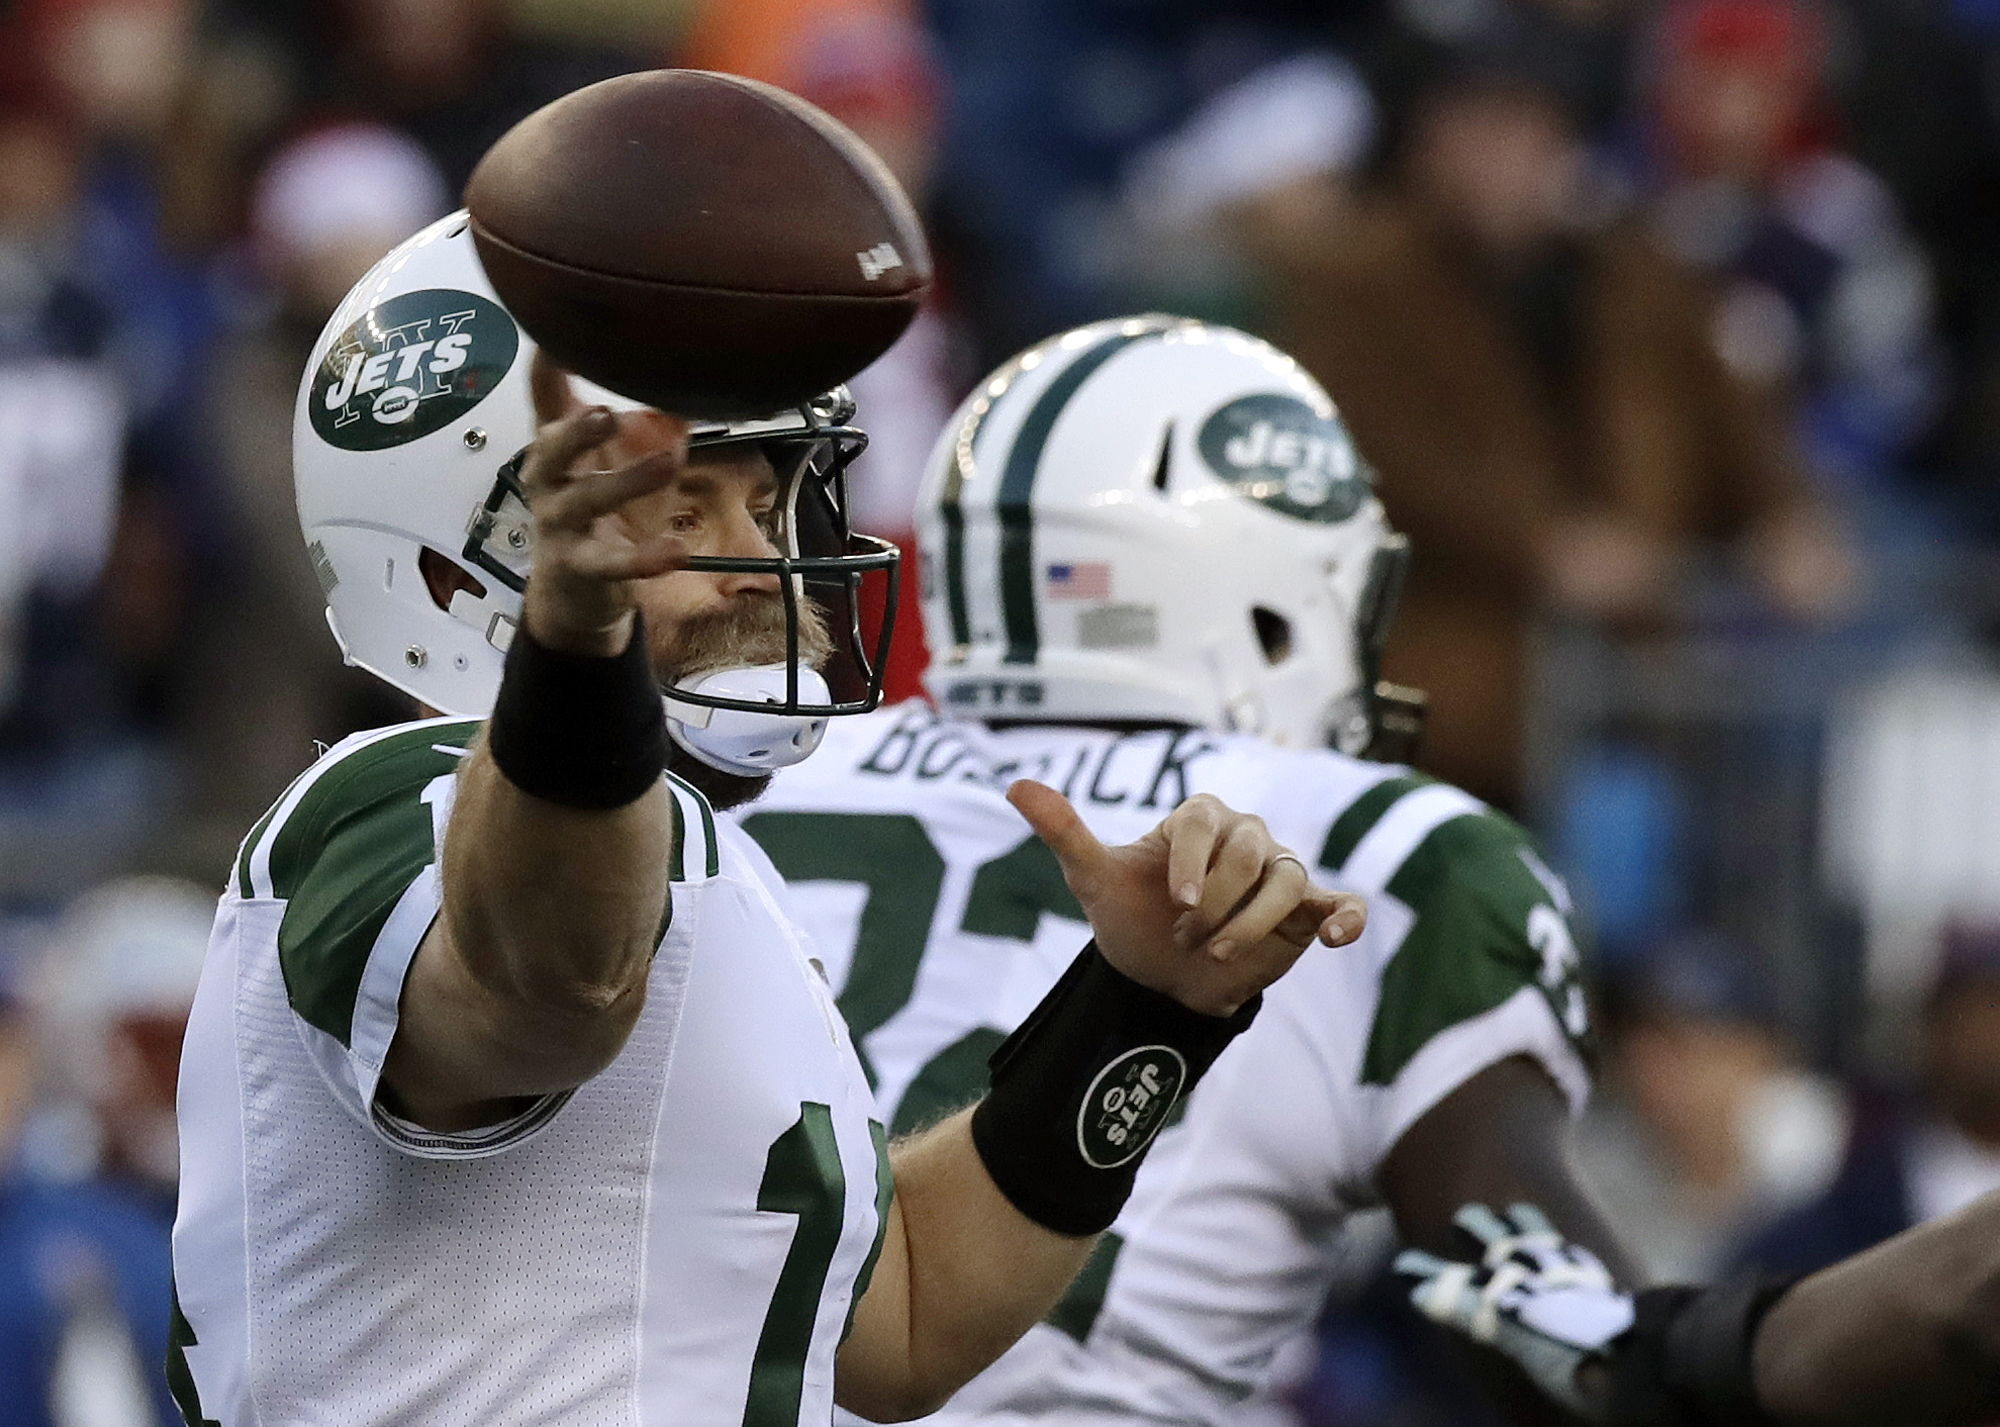 New York Jets quarterback Ryan Fitzpatrick passes against the New England Patriots during the second half of an NFL football game, Saturday, Dec. 24, 2016, in Foxborough, Mass. (AP Photo/Charles Krupa)